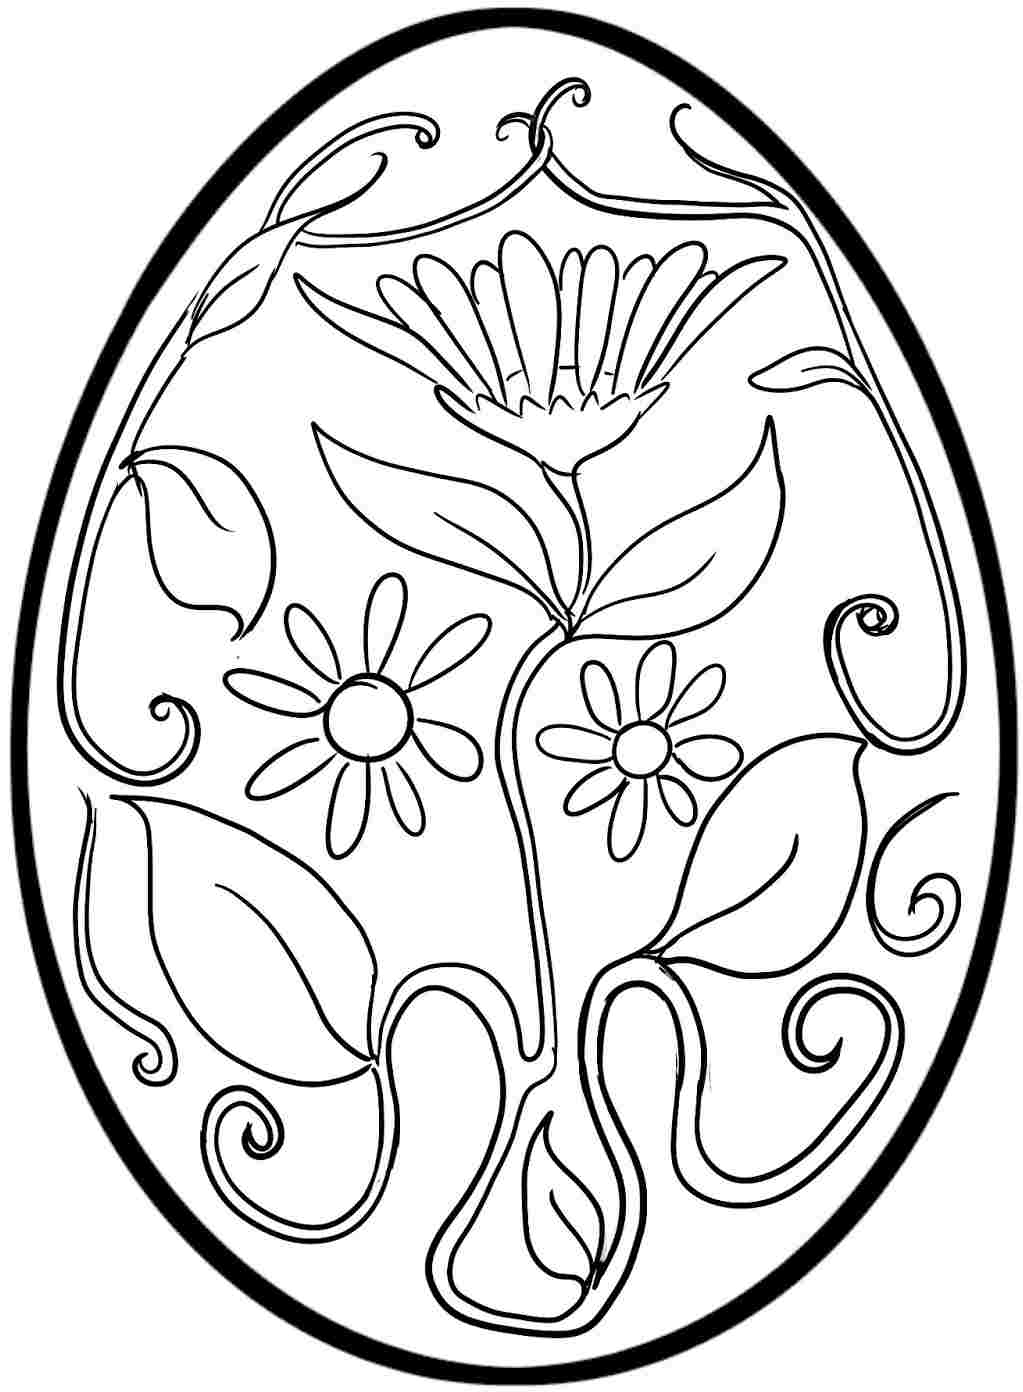 egg for colouring easter adult coloring pages free printable downloads for colouring egg